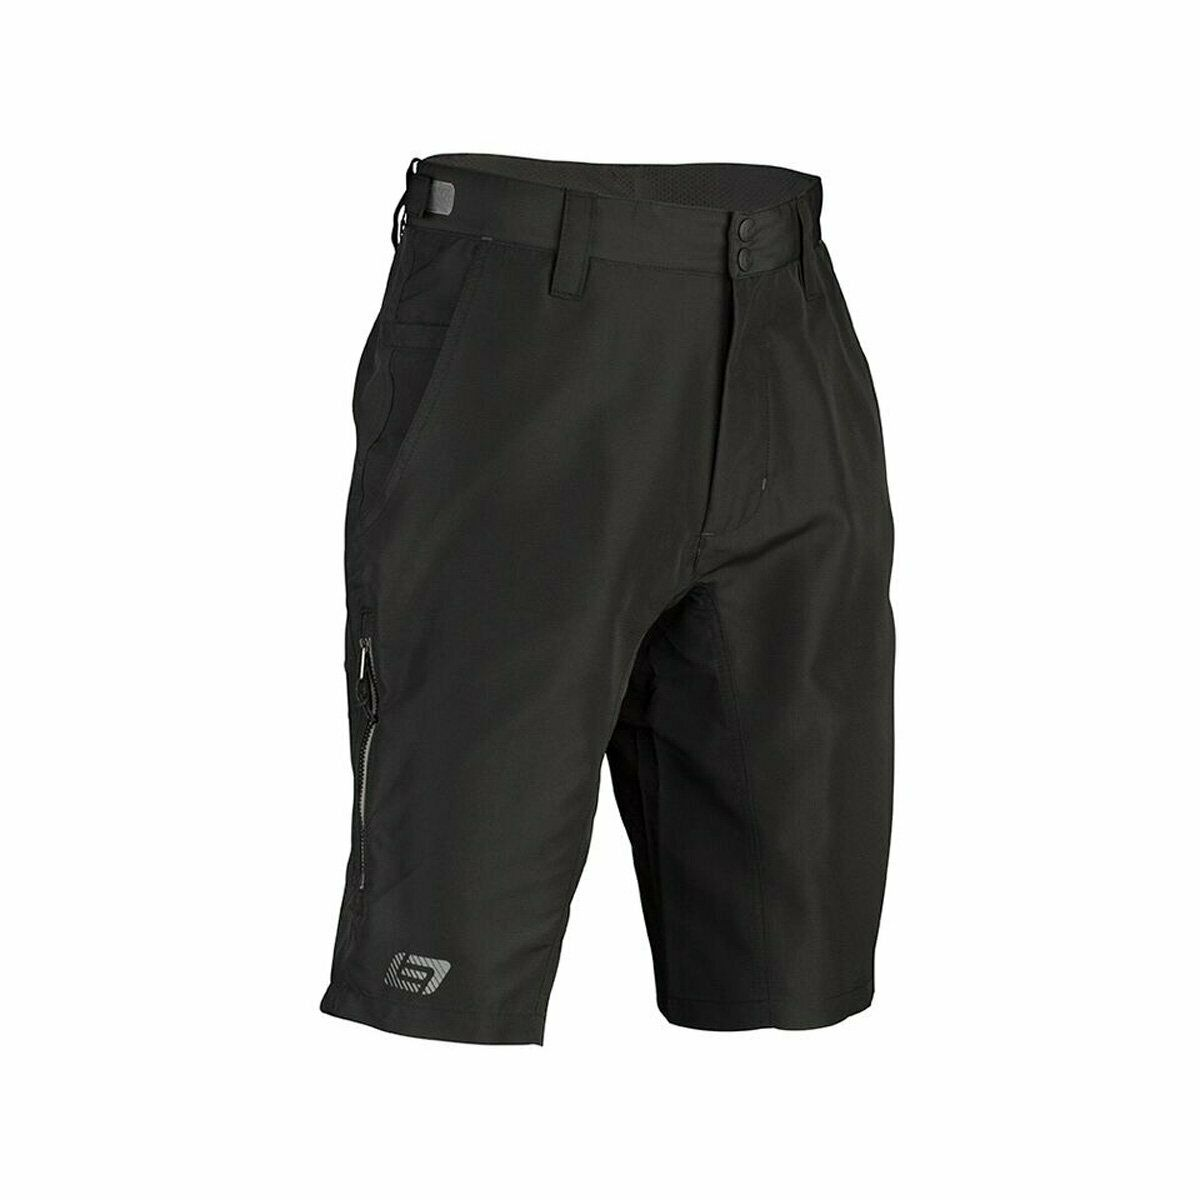 Bellwether Ridgeline Men's Cycling Shorts